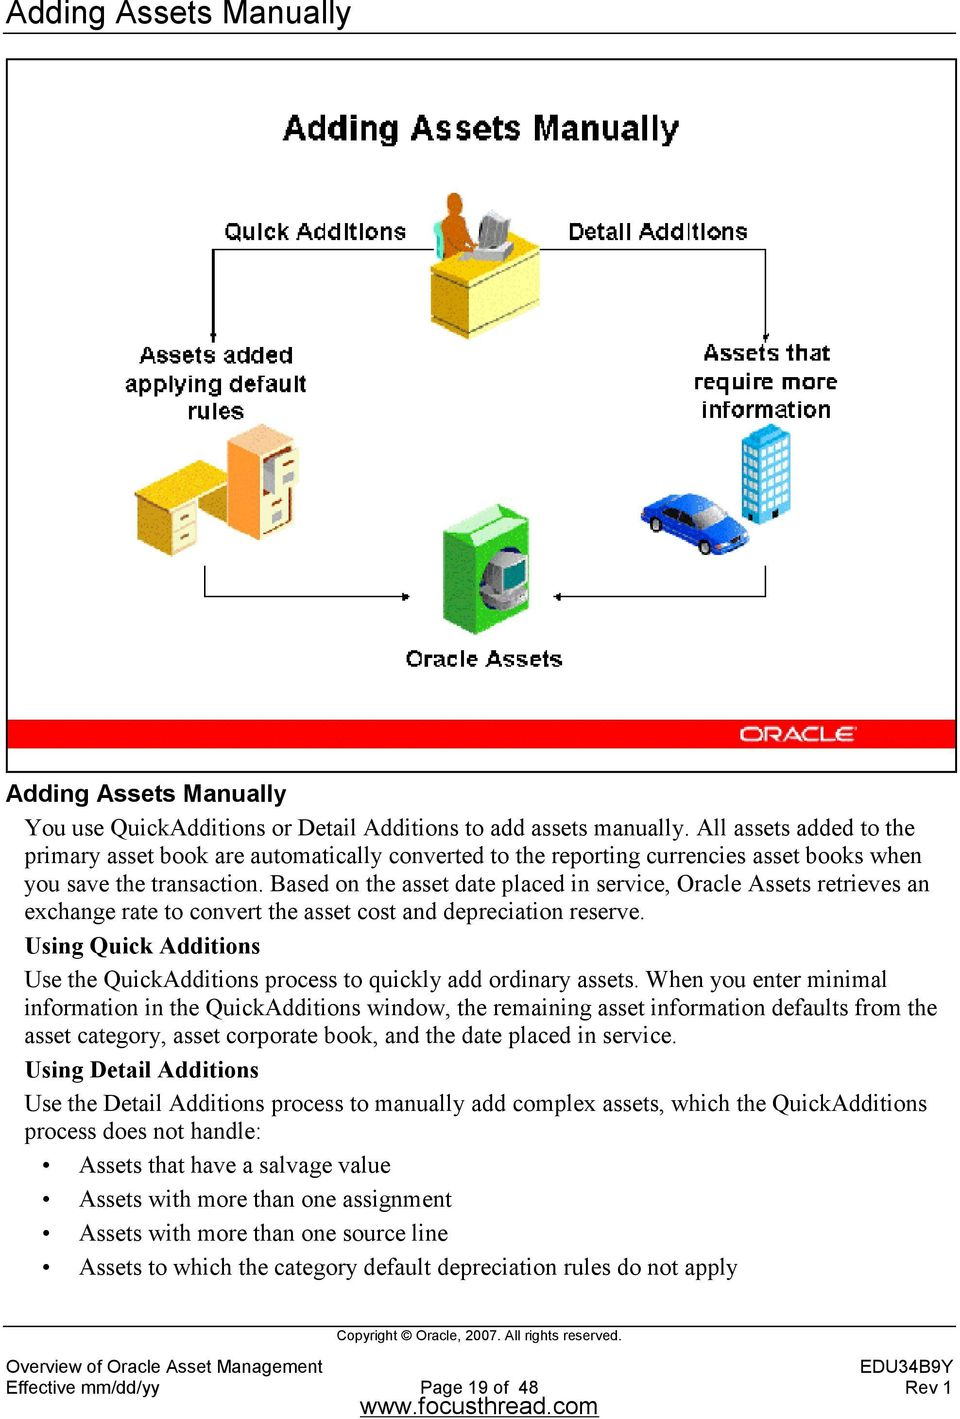 Overview of Oracle Asset Management - PDF